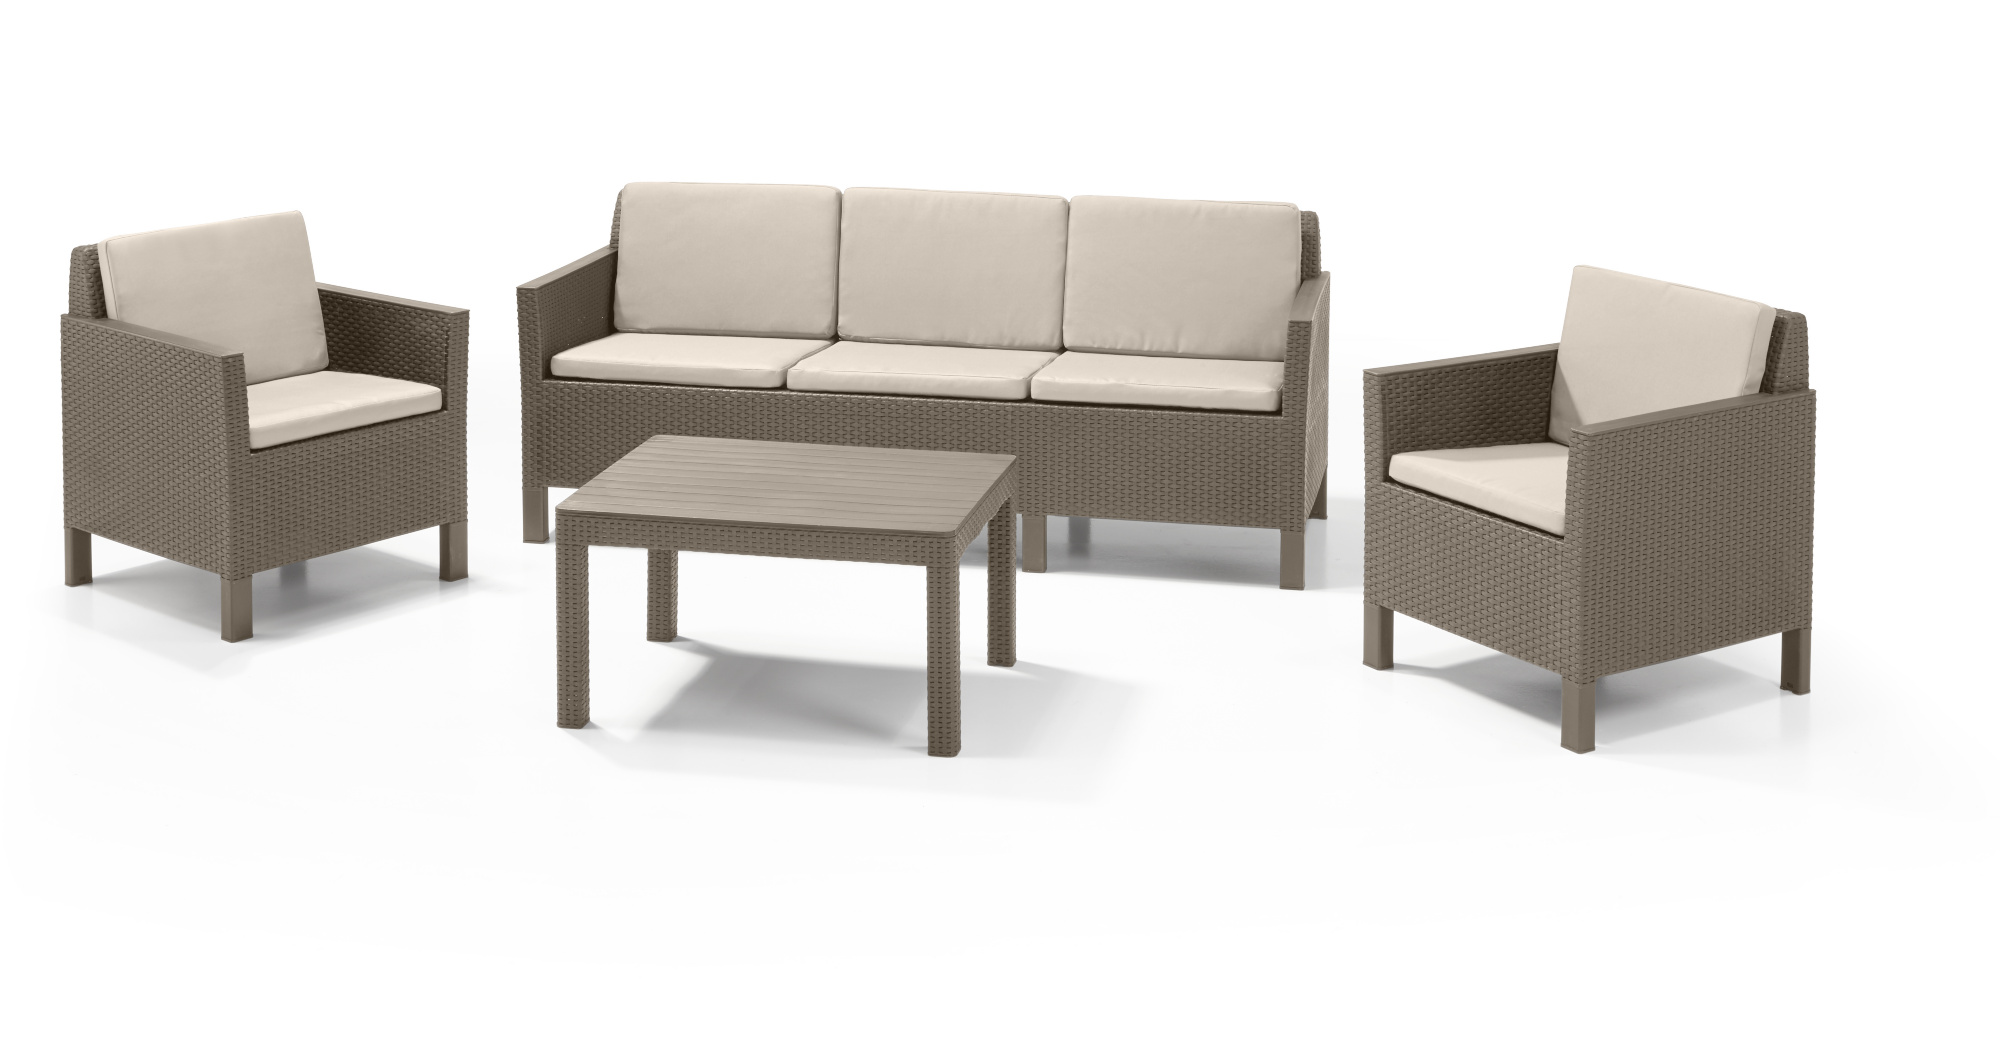 Lounge Sofa Allibert Amazing View Chicago Lounge Set Cappuccino Three Seater